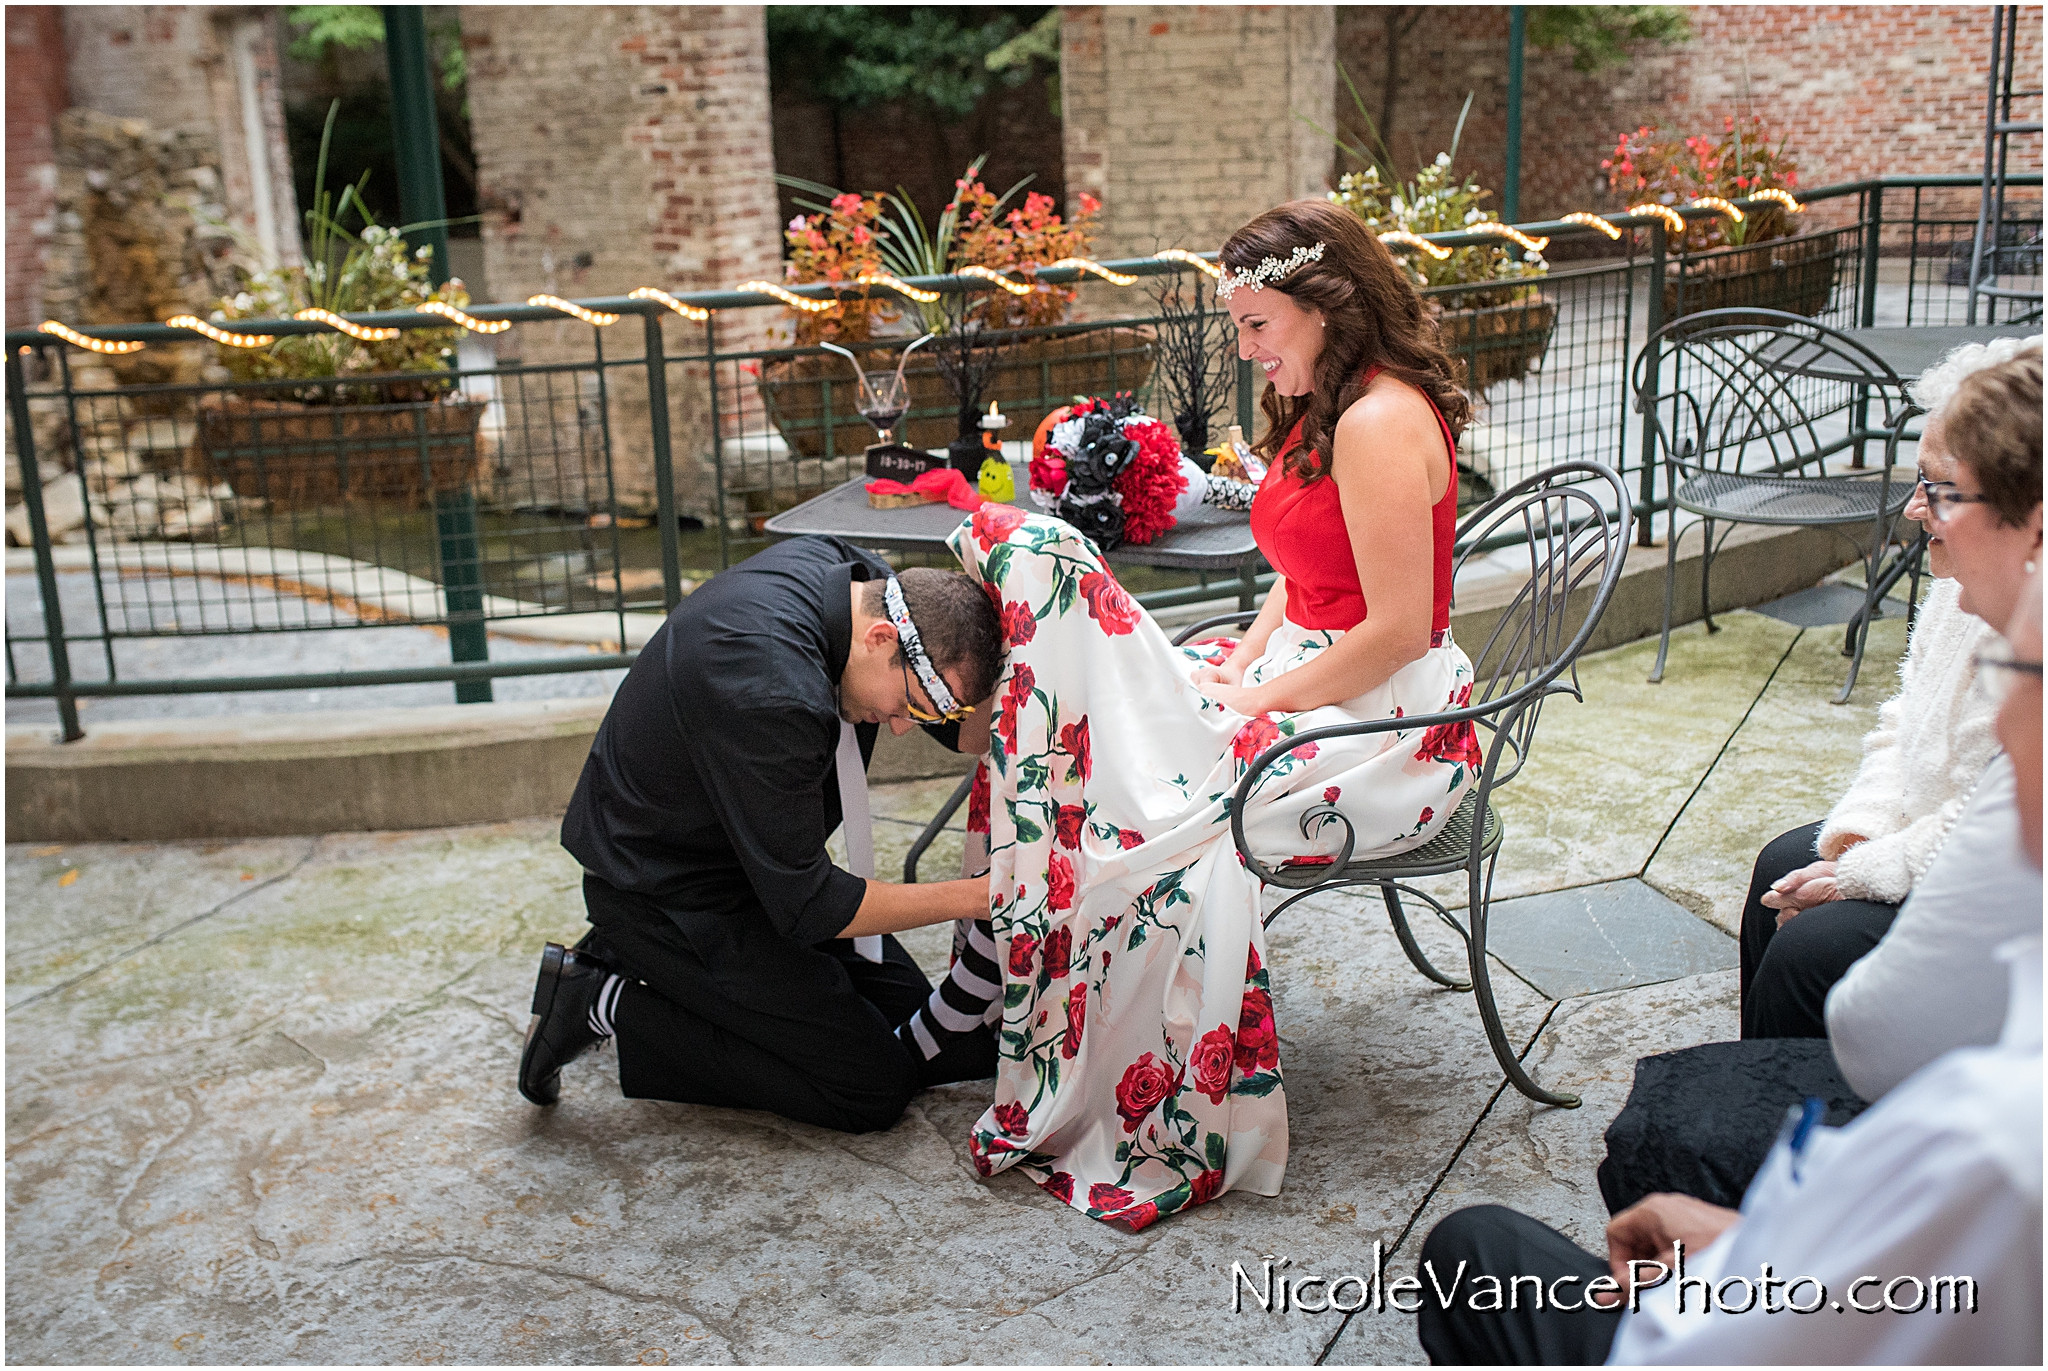 The groom retrieves the garter at Bookbinders on the back patio.